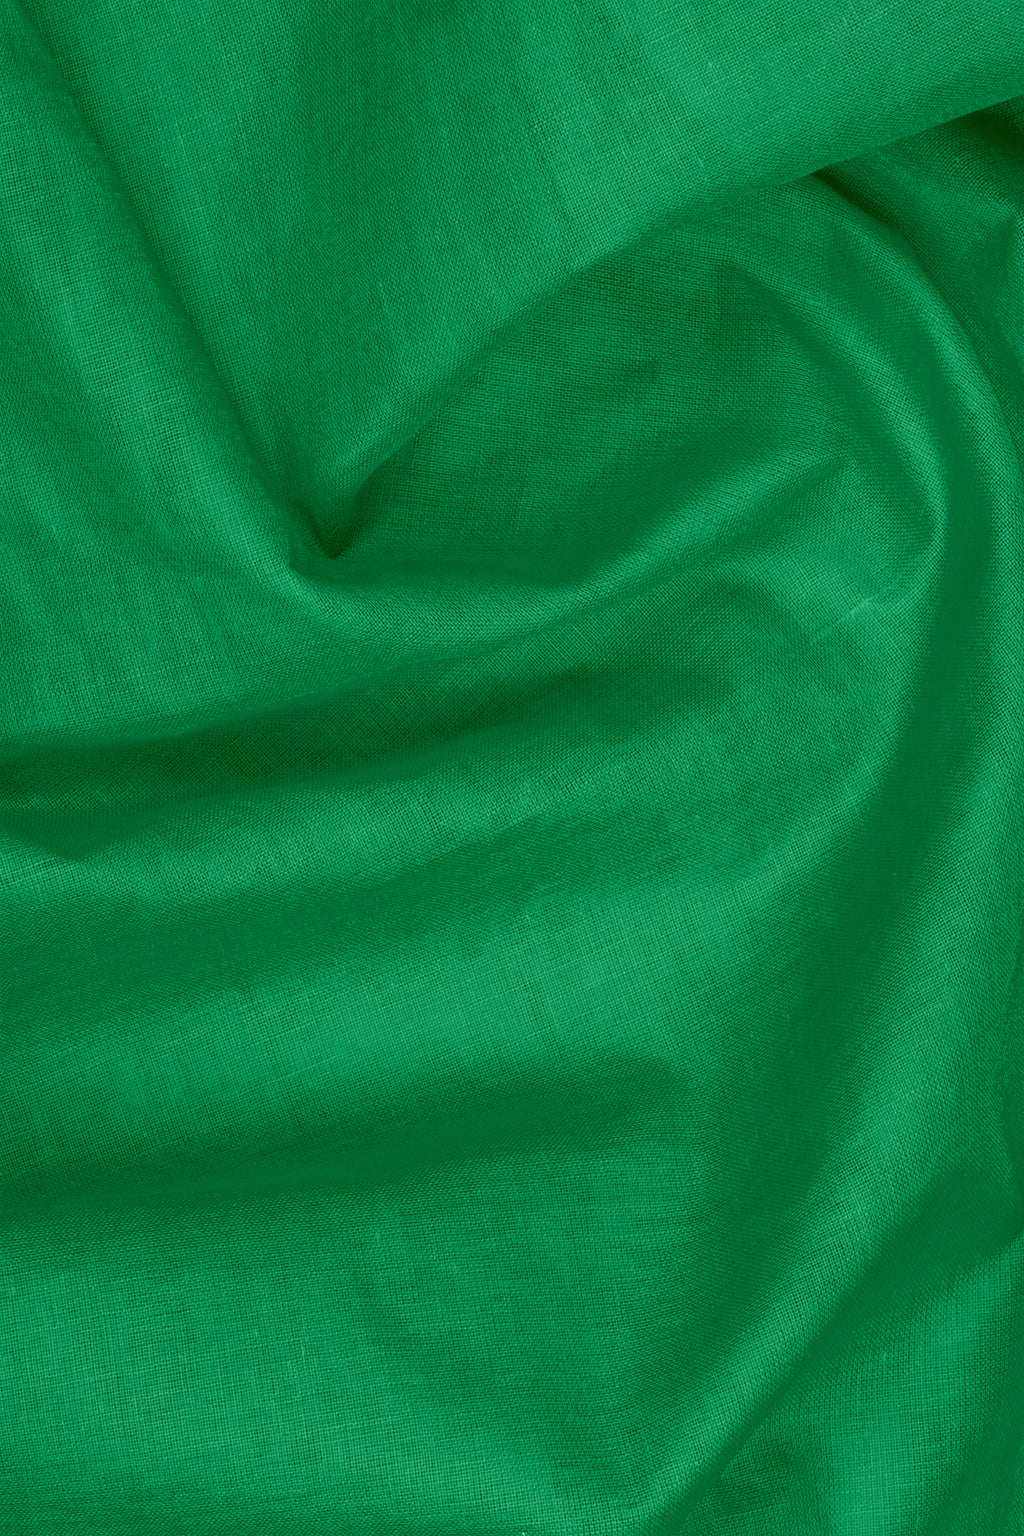 Green Turban Cloth